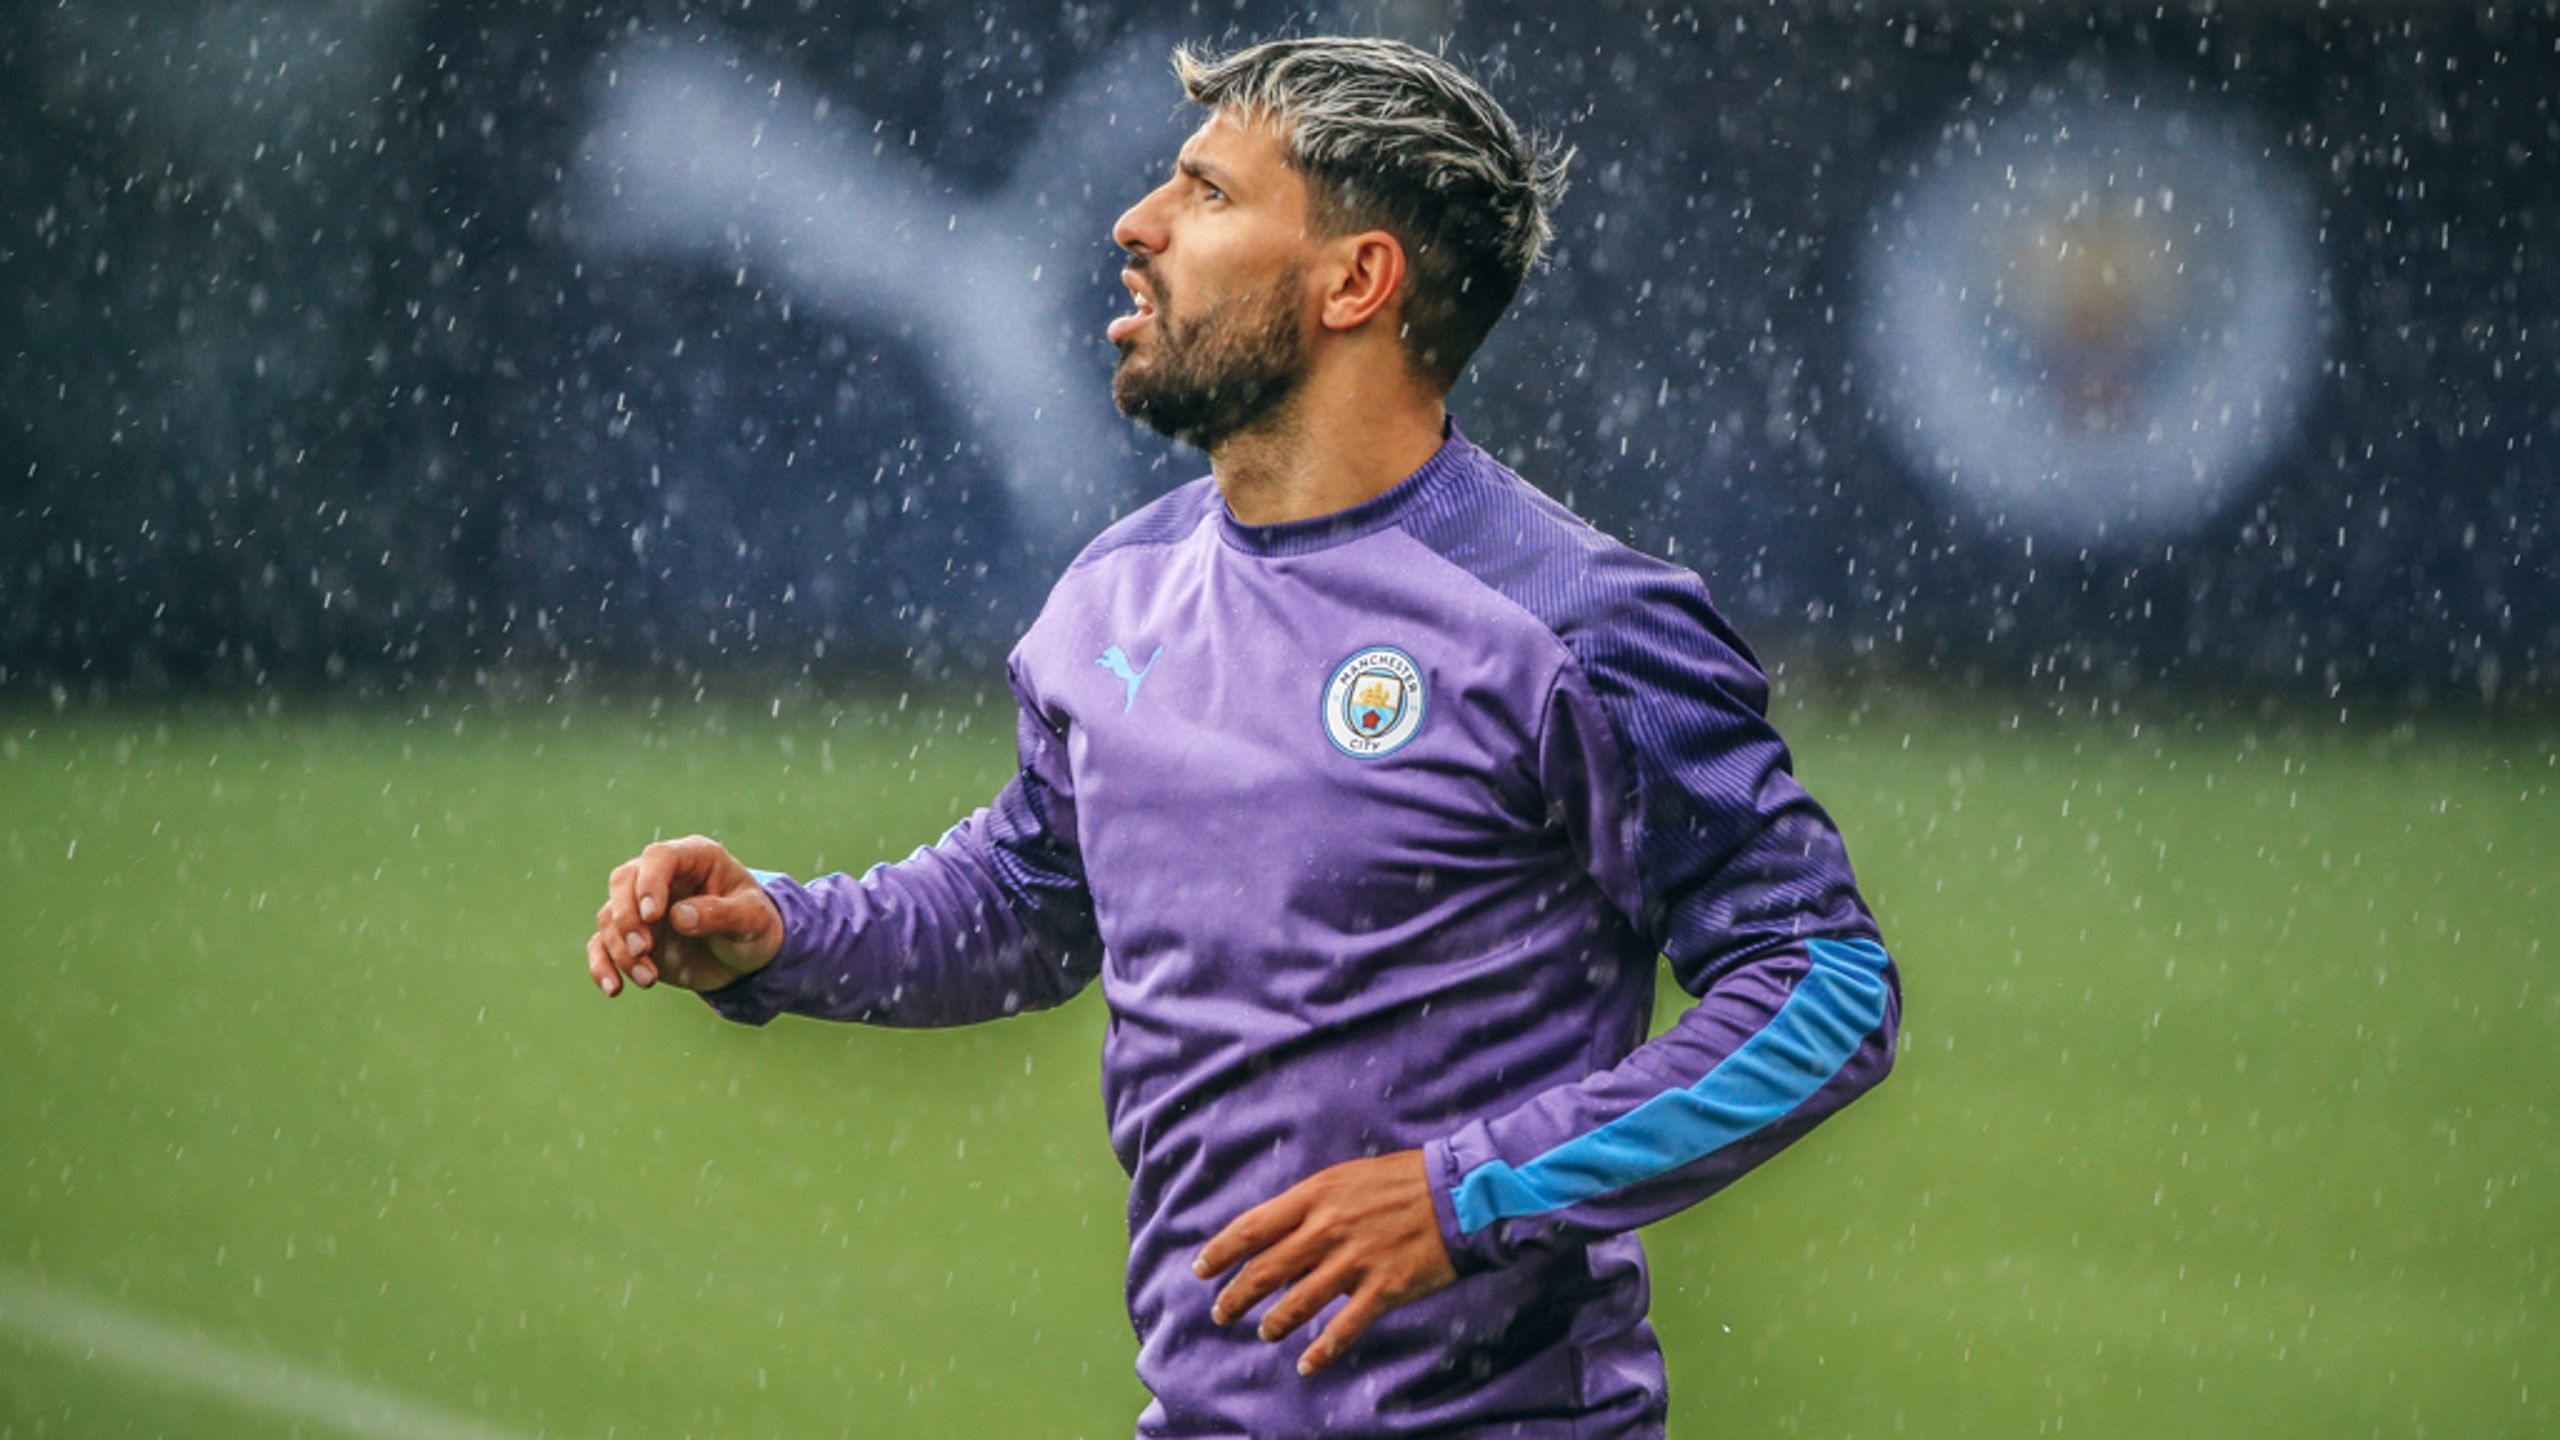 SERGIO: Dancing between the raindrops